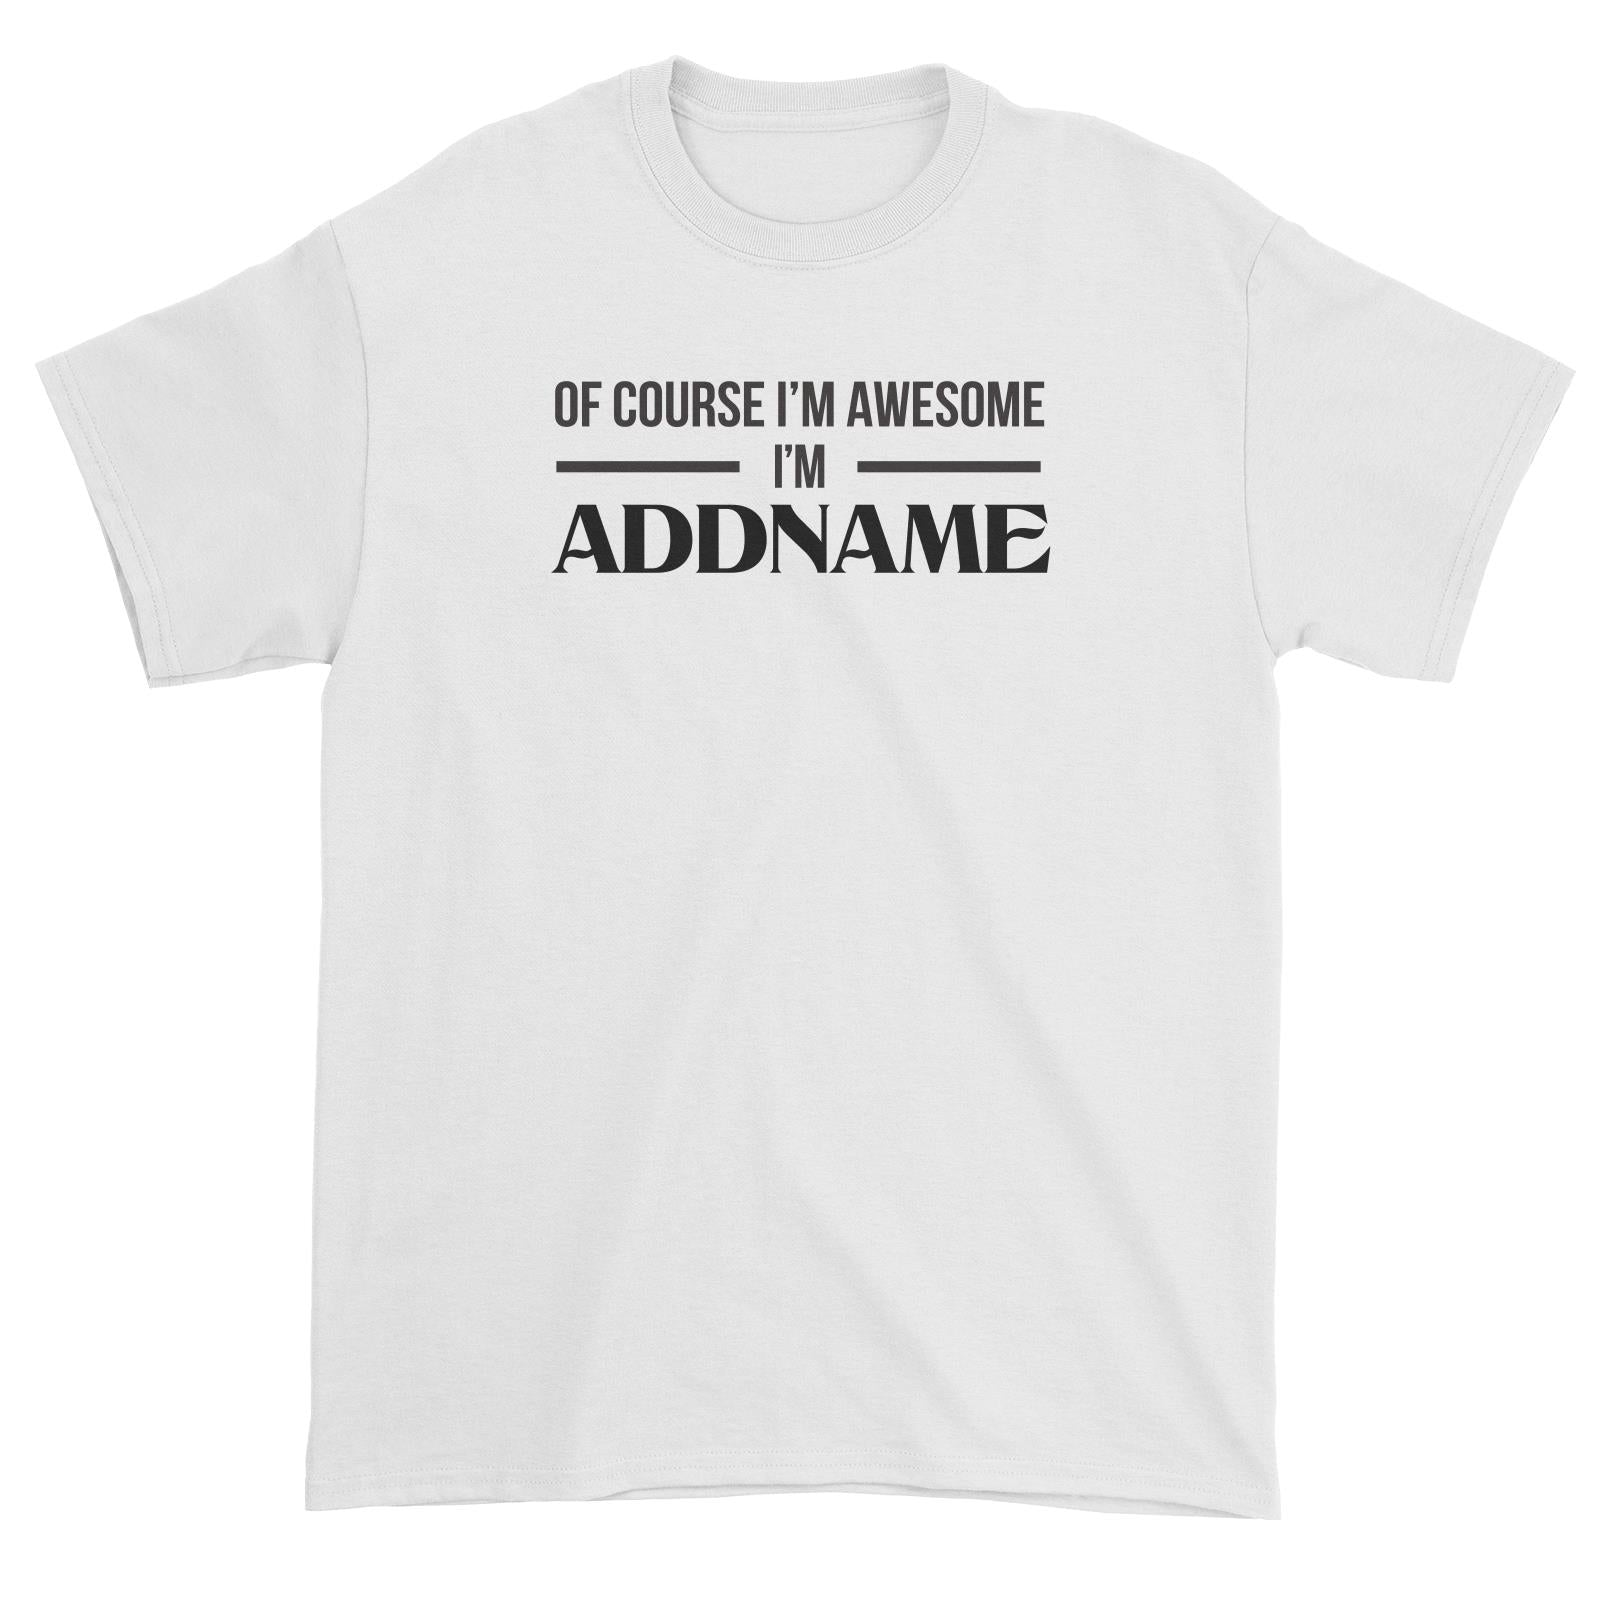 Personalize It Awesome Of Course I'm Awesome I'm Addname Unisex T-Shirt